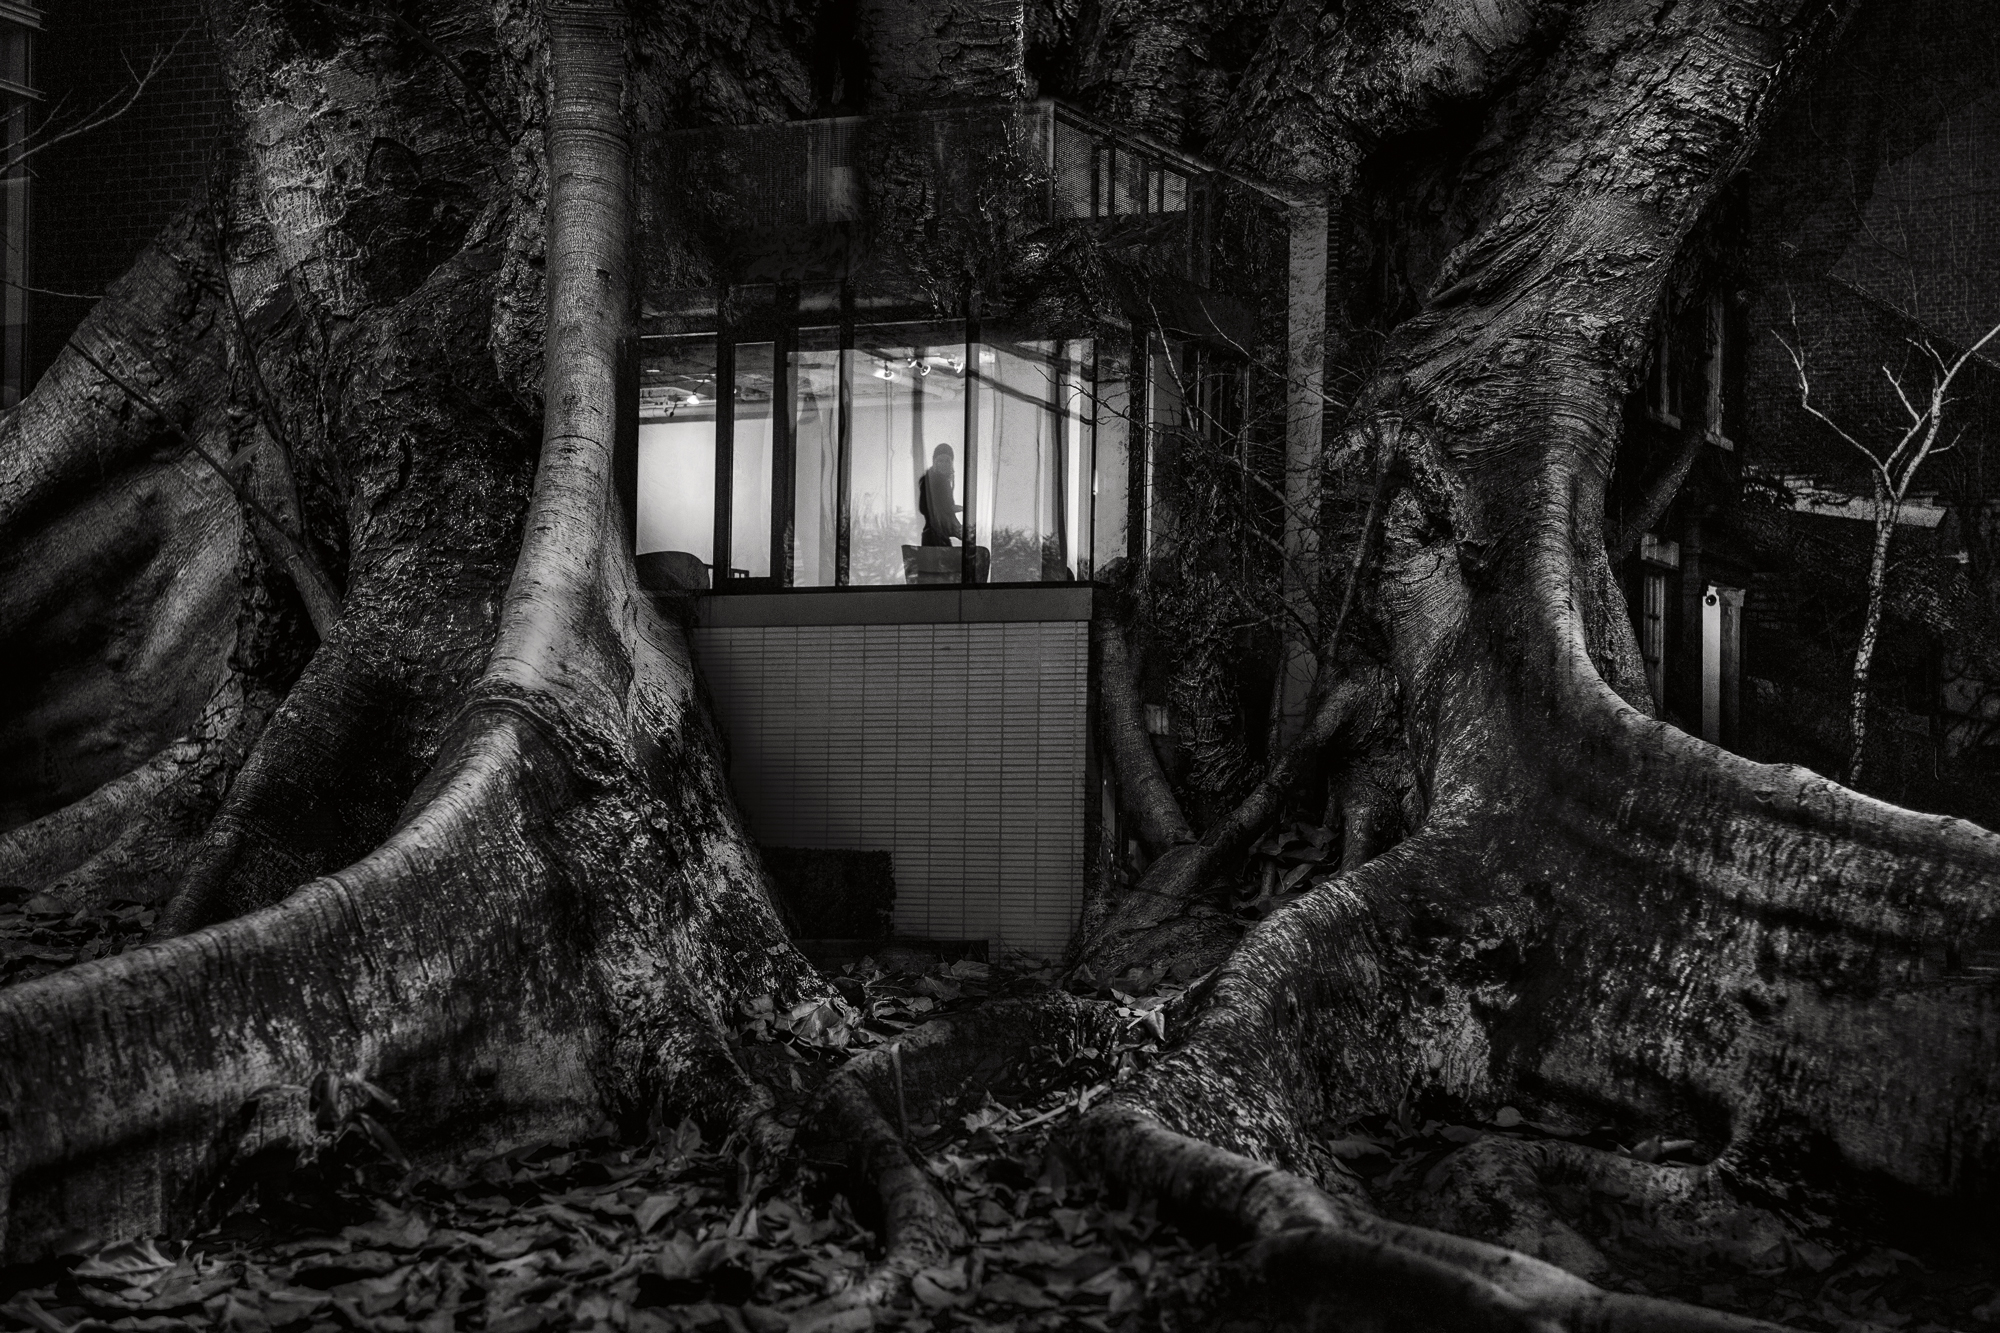 Treehouse 2016 Image size Combination of two images from Brisbane and New York. Exhibited at  Alternating Current Gallery February 2017 Scratch Art Space Sydney May 2017 for the Head On Festival Bakery Gallery May-June 2017 Arthouse Gallery Ballarat for the Ballarat International Foto Biennale August- September 2017 Archival digital print on Canson Platine Rag Signed and numbered on print margin with certificate attached to rear of frame. © Christopher Sheils